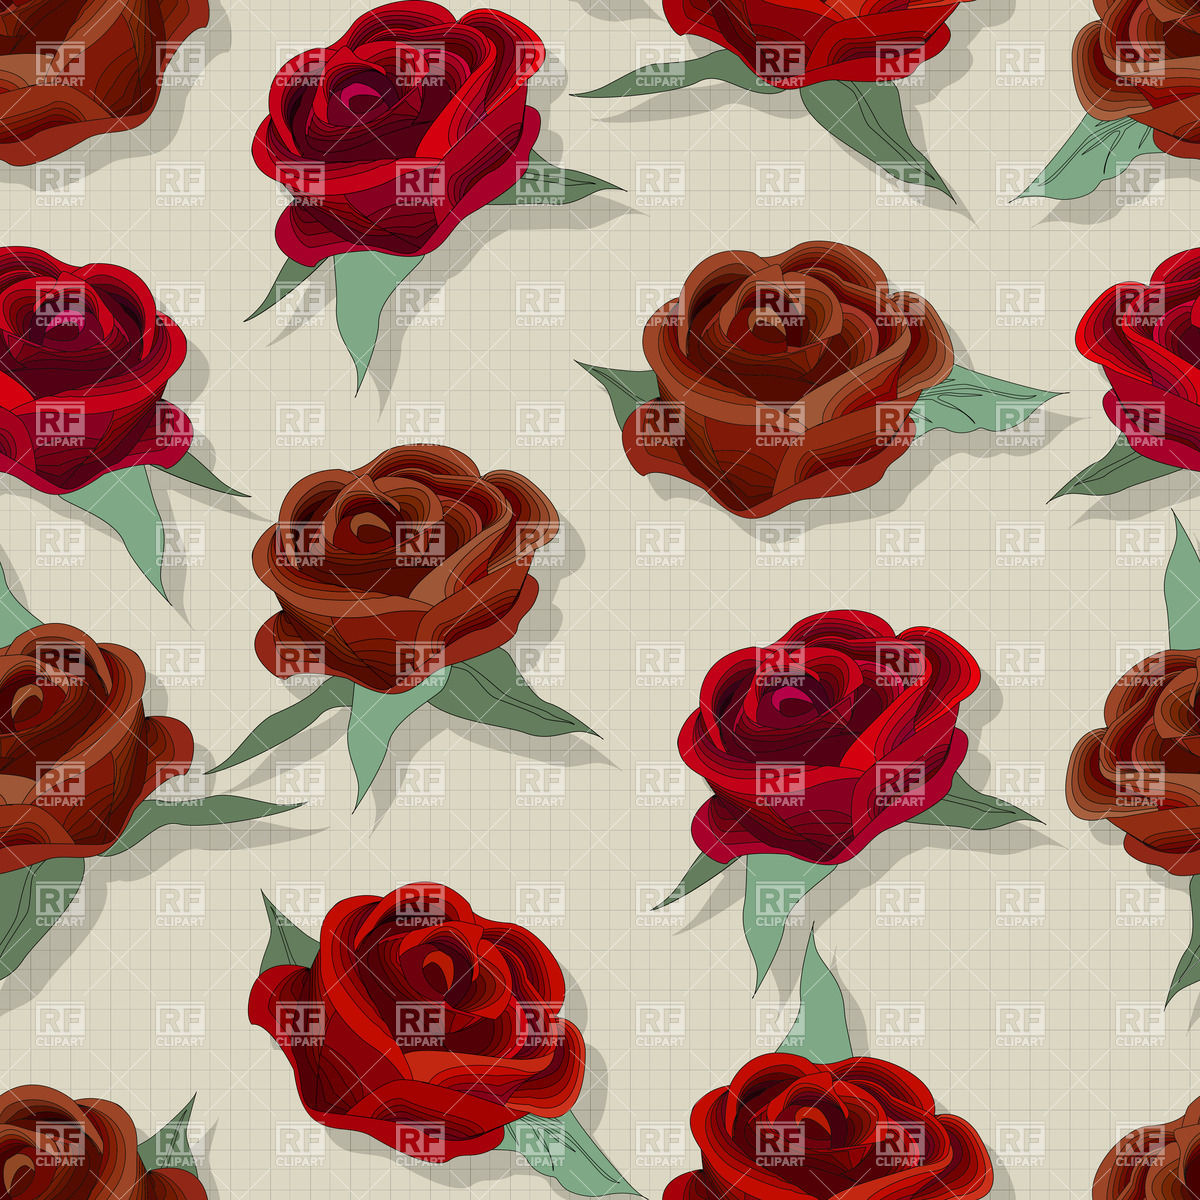 Seamless retro style rose pattern for fashion design Vector Image.